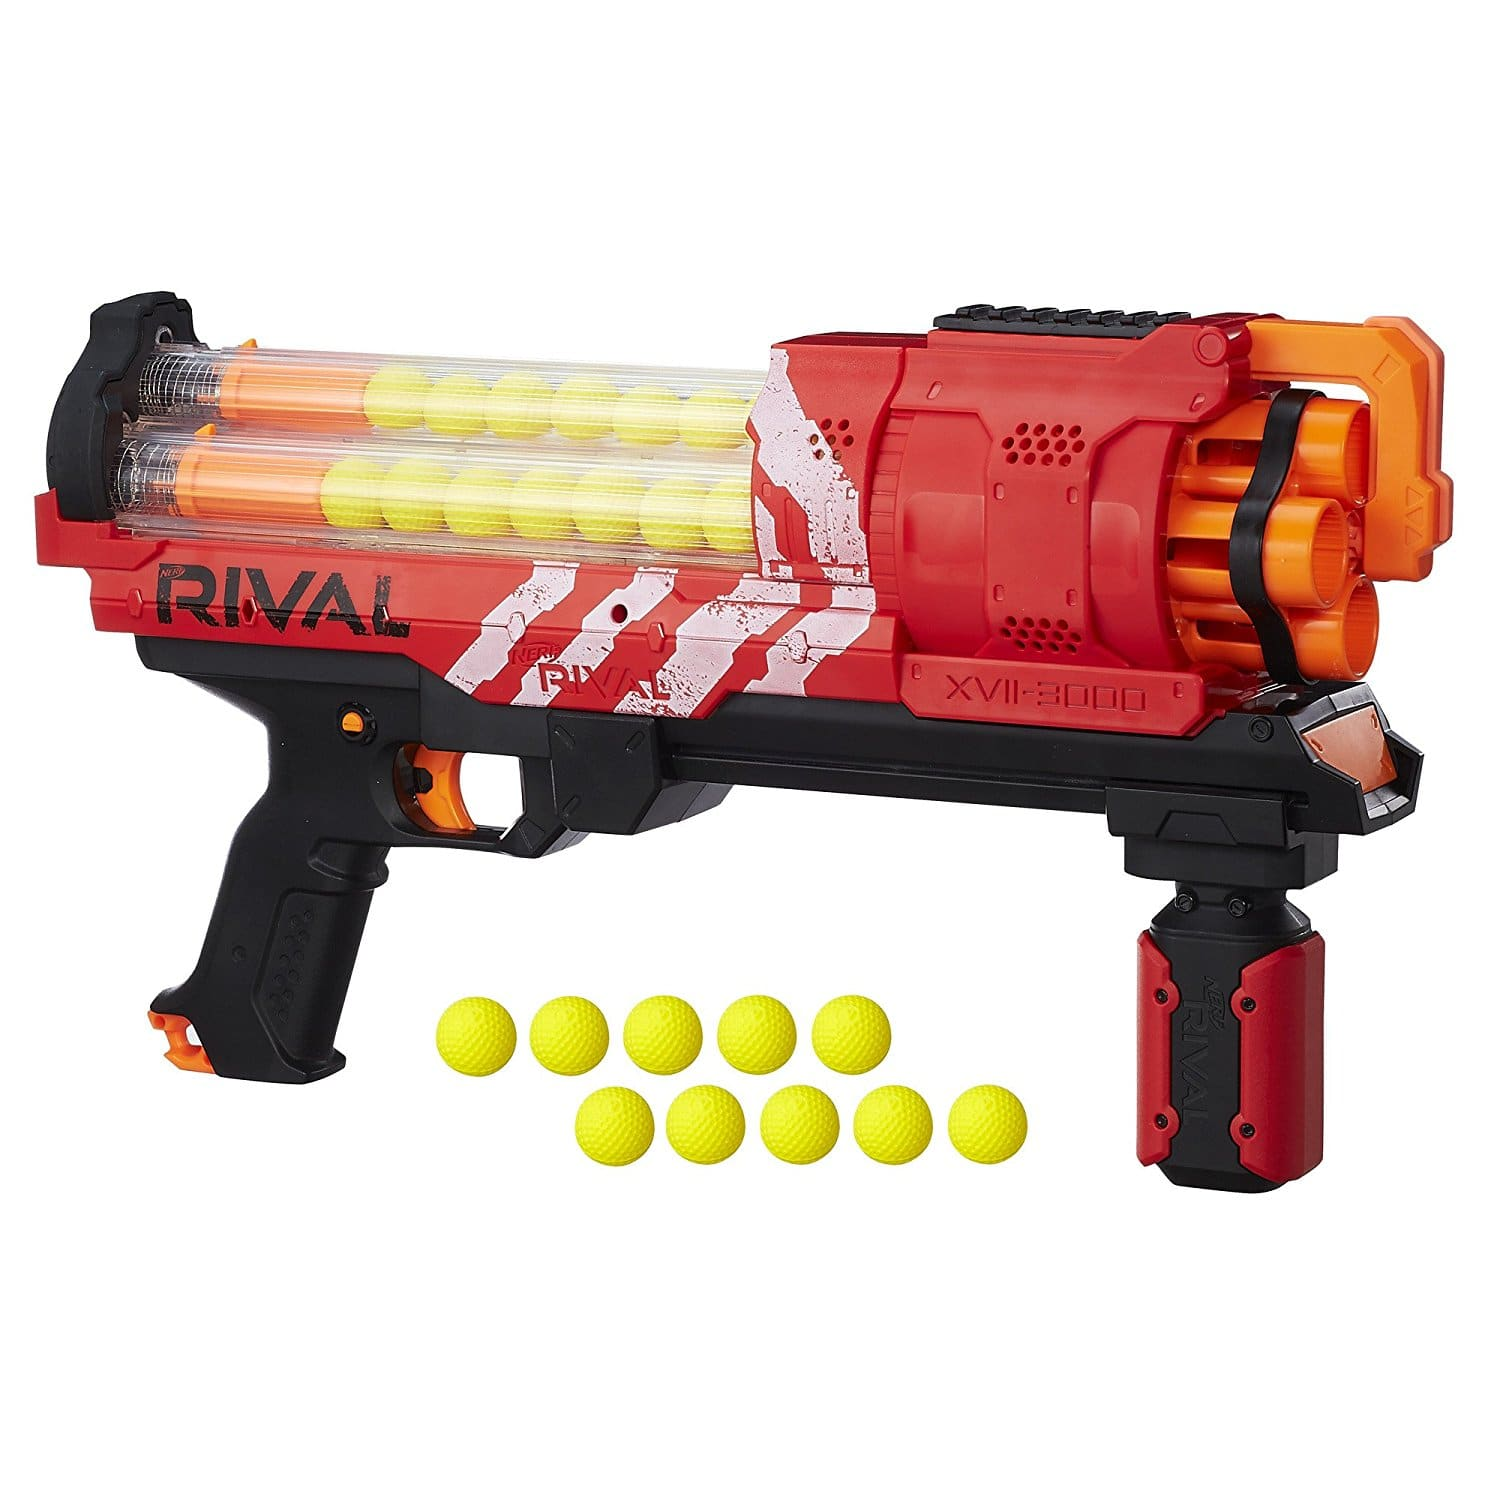 1036713 Orig Shop Boy Toys Walmart Aisle At Displaying Blue Nerf Guns And  Action Figures 2